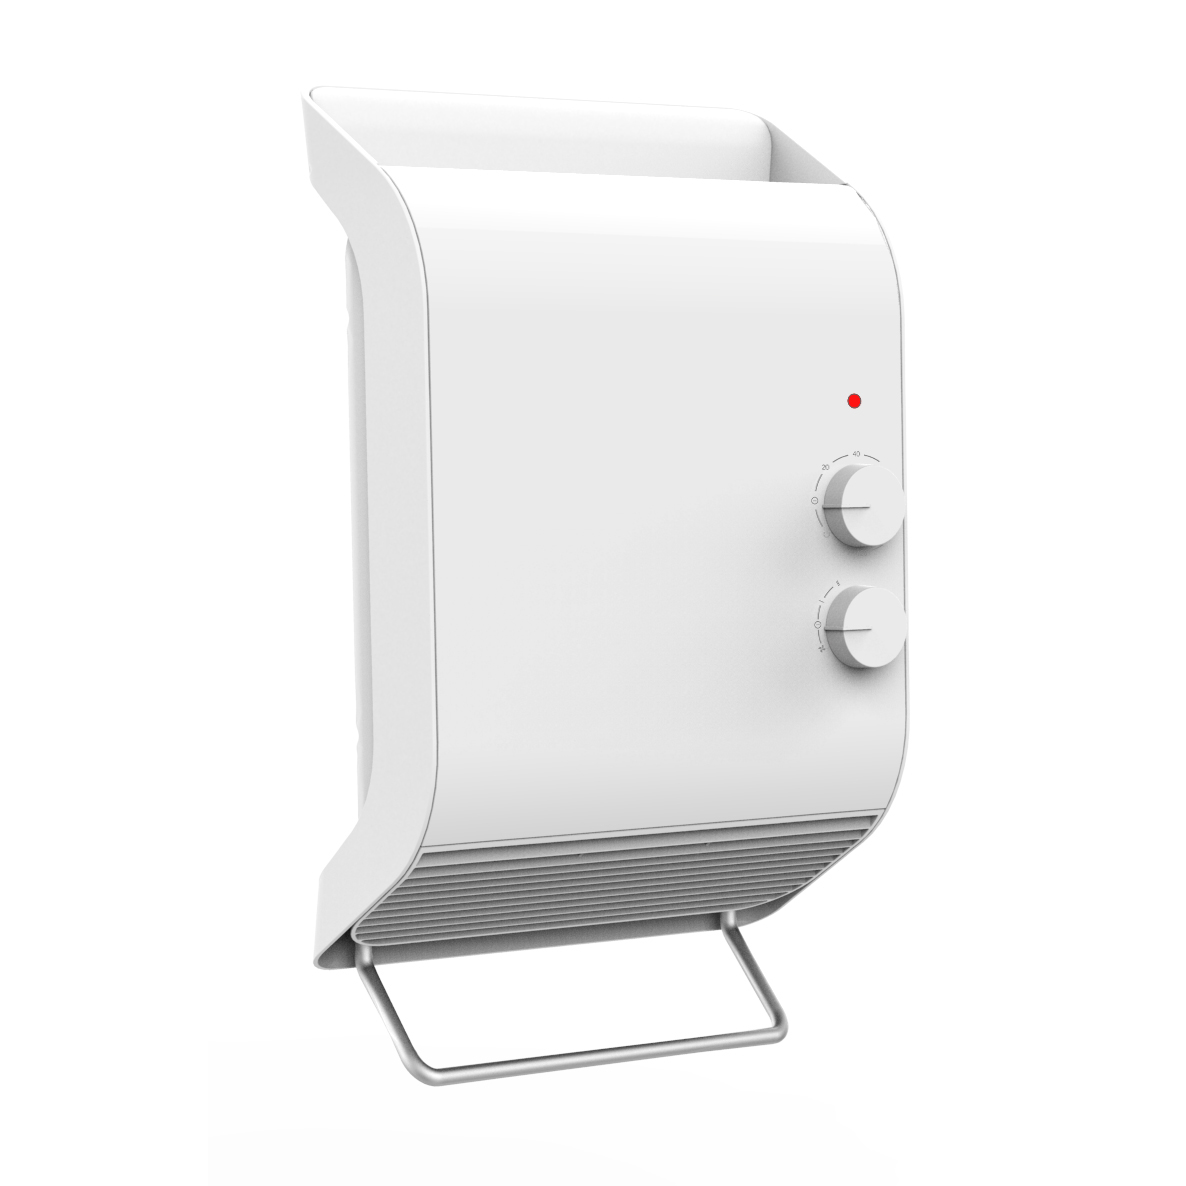 Reasonable price for Electric Ptc Heater Wall Mounted - 2KW Home Ceramic  PTC  Fan Heater,Wall-Mounted Heater With 2 Heat Settings,IP23 Waterproof  Heating For Bathroom,White,DF-HT5102P – Li...